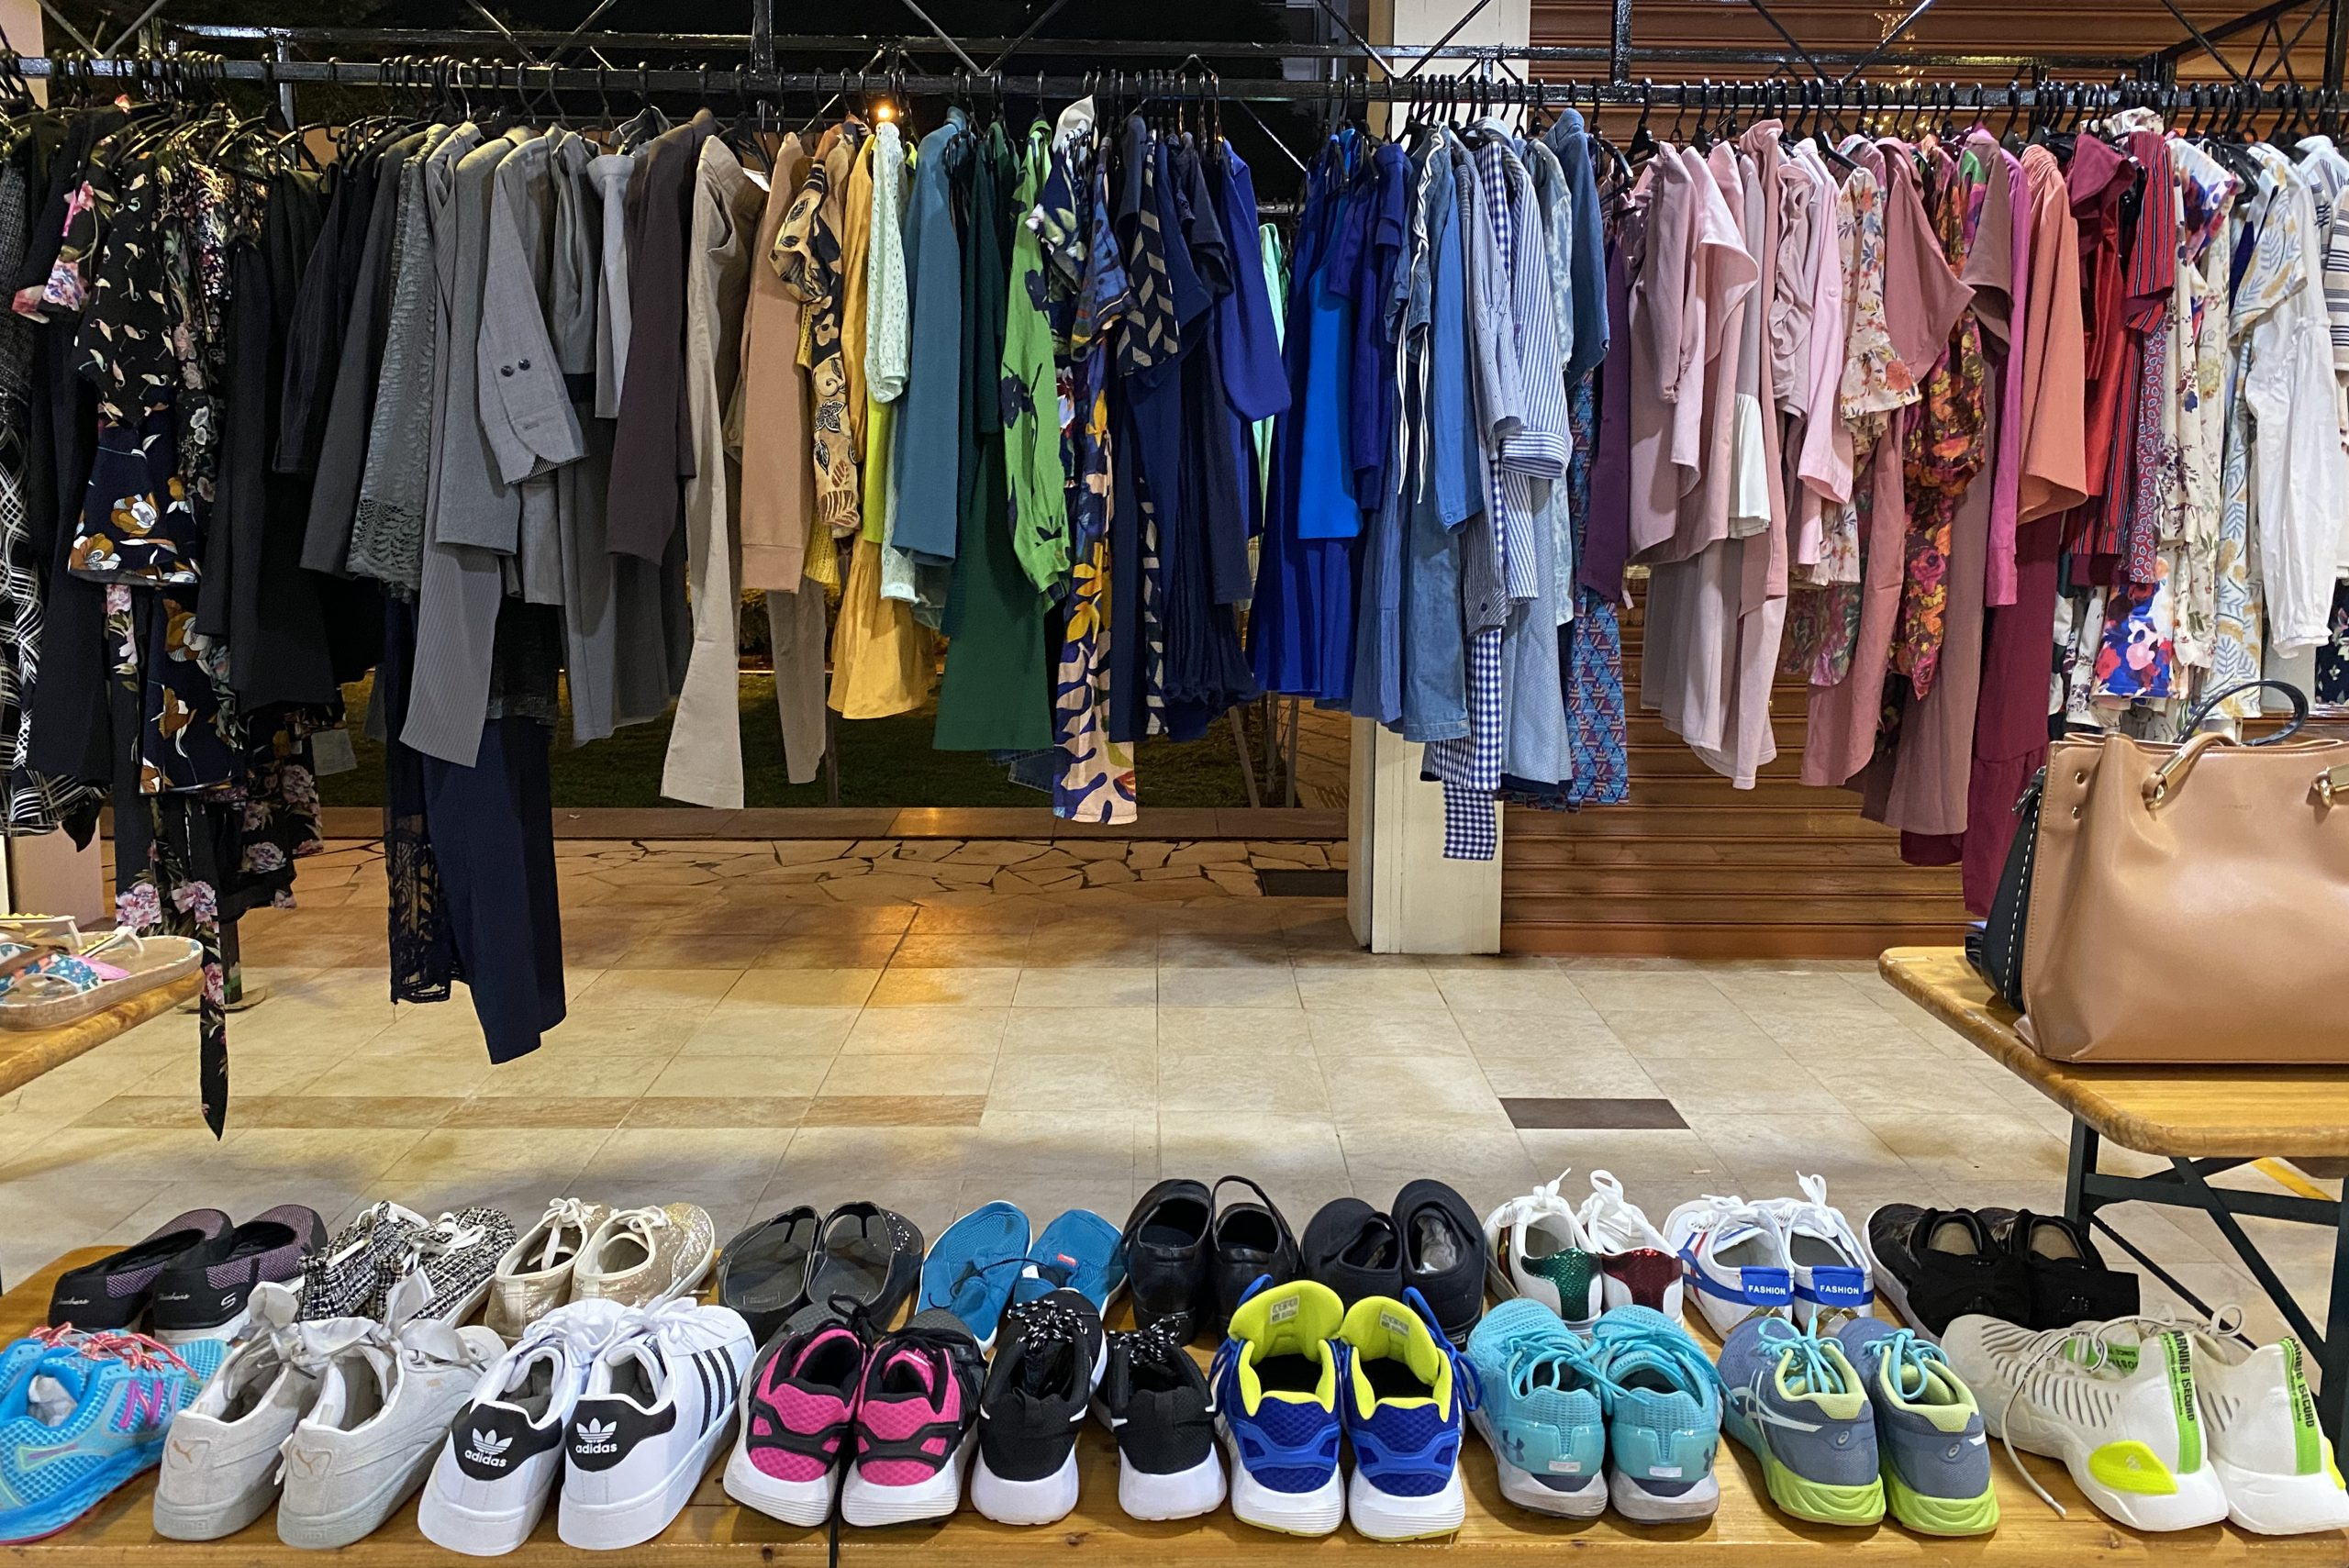 After many days of sorting and organising clothes based on their size and condition, volunteers finally settled on a colour-coded presentation that looked like something out of a departmental store.